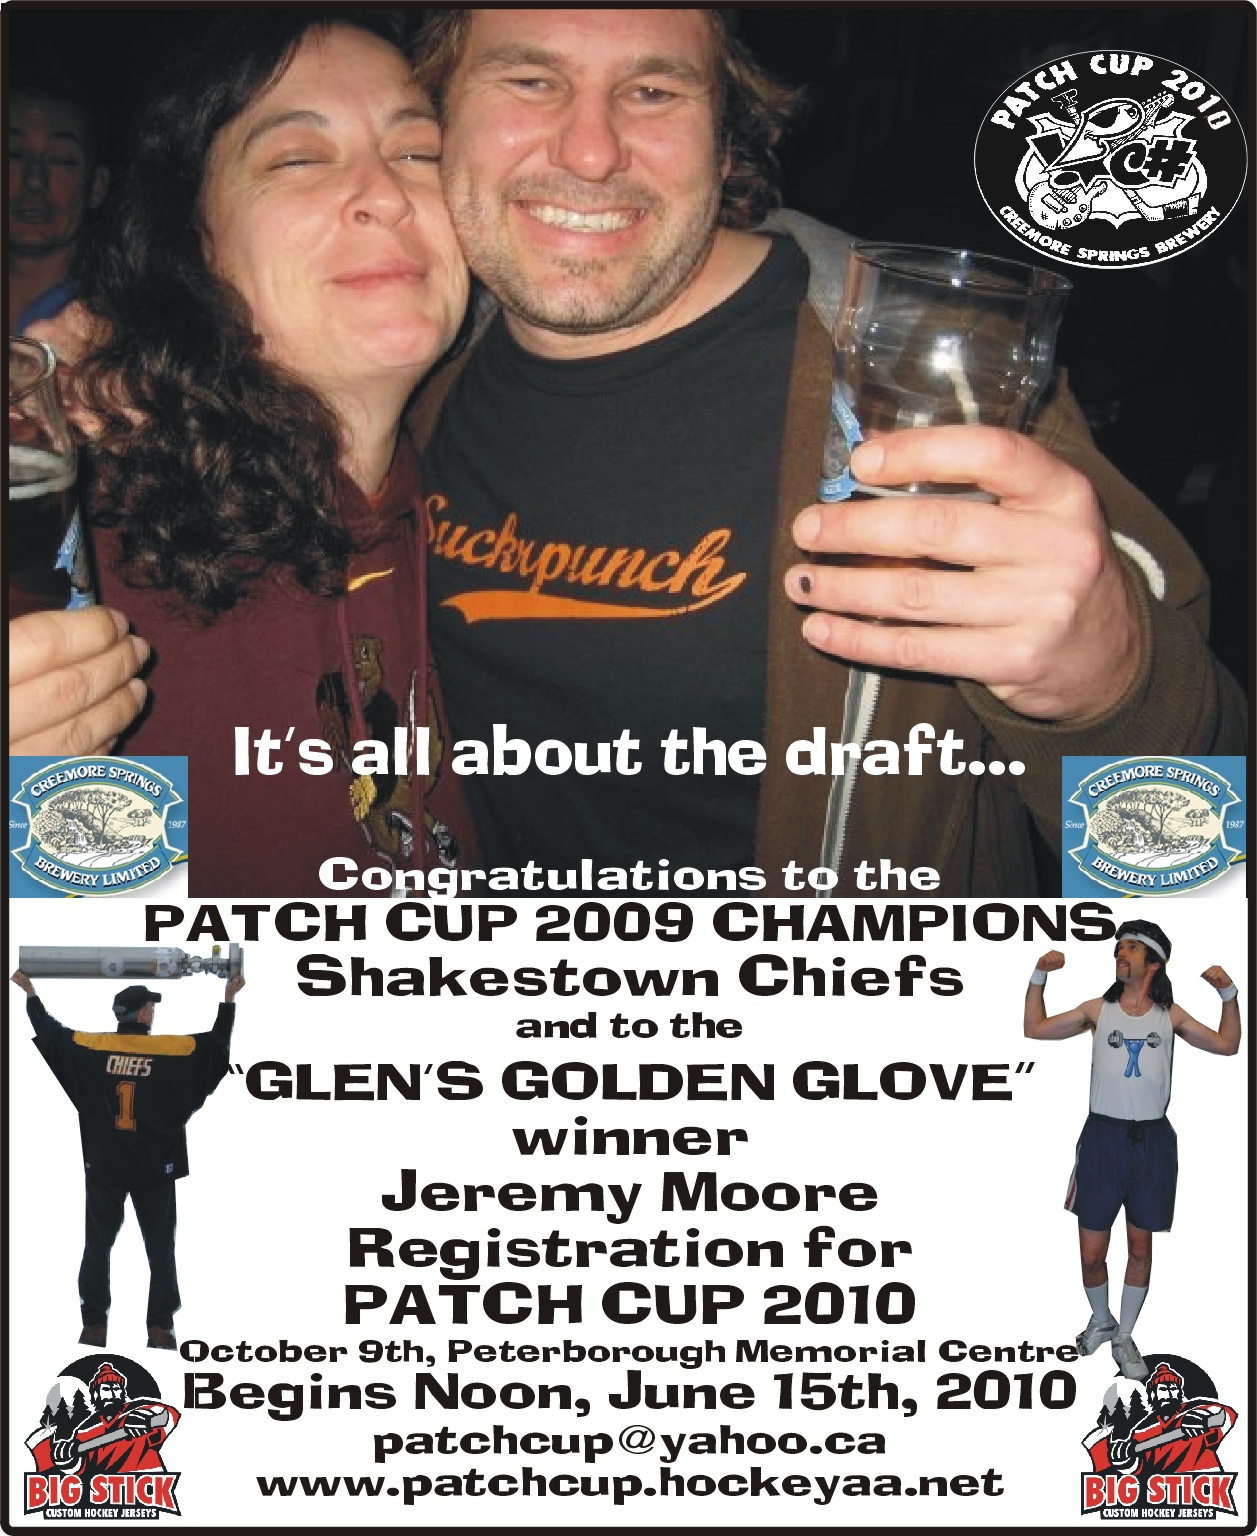 http://www.patchcup.hockeyaa.net/img/48/File/PatchCupAd2010revised.jpg